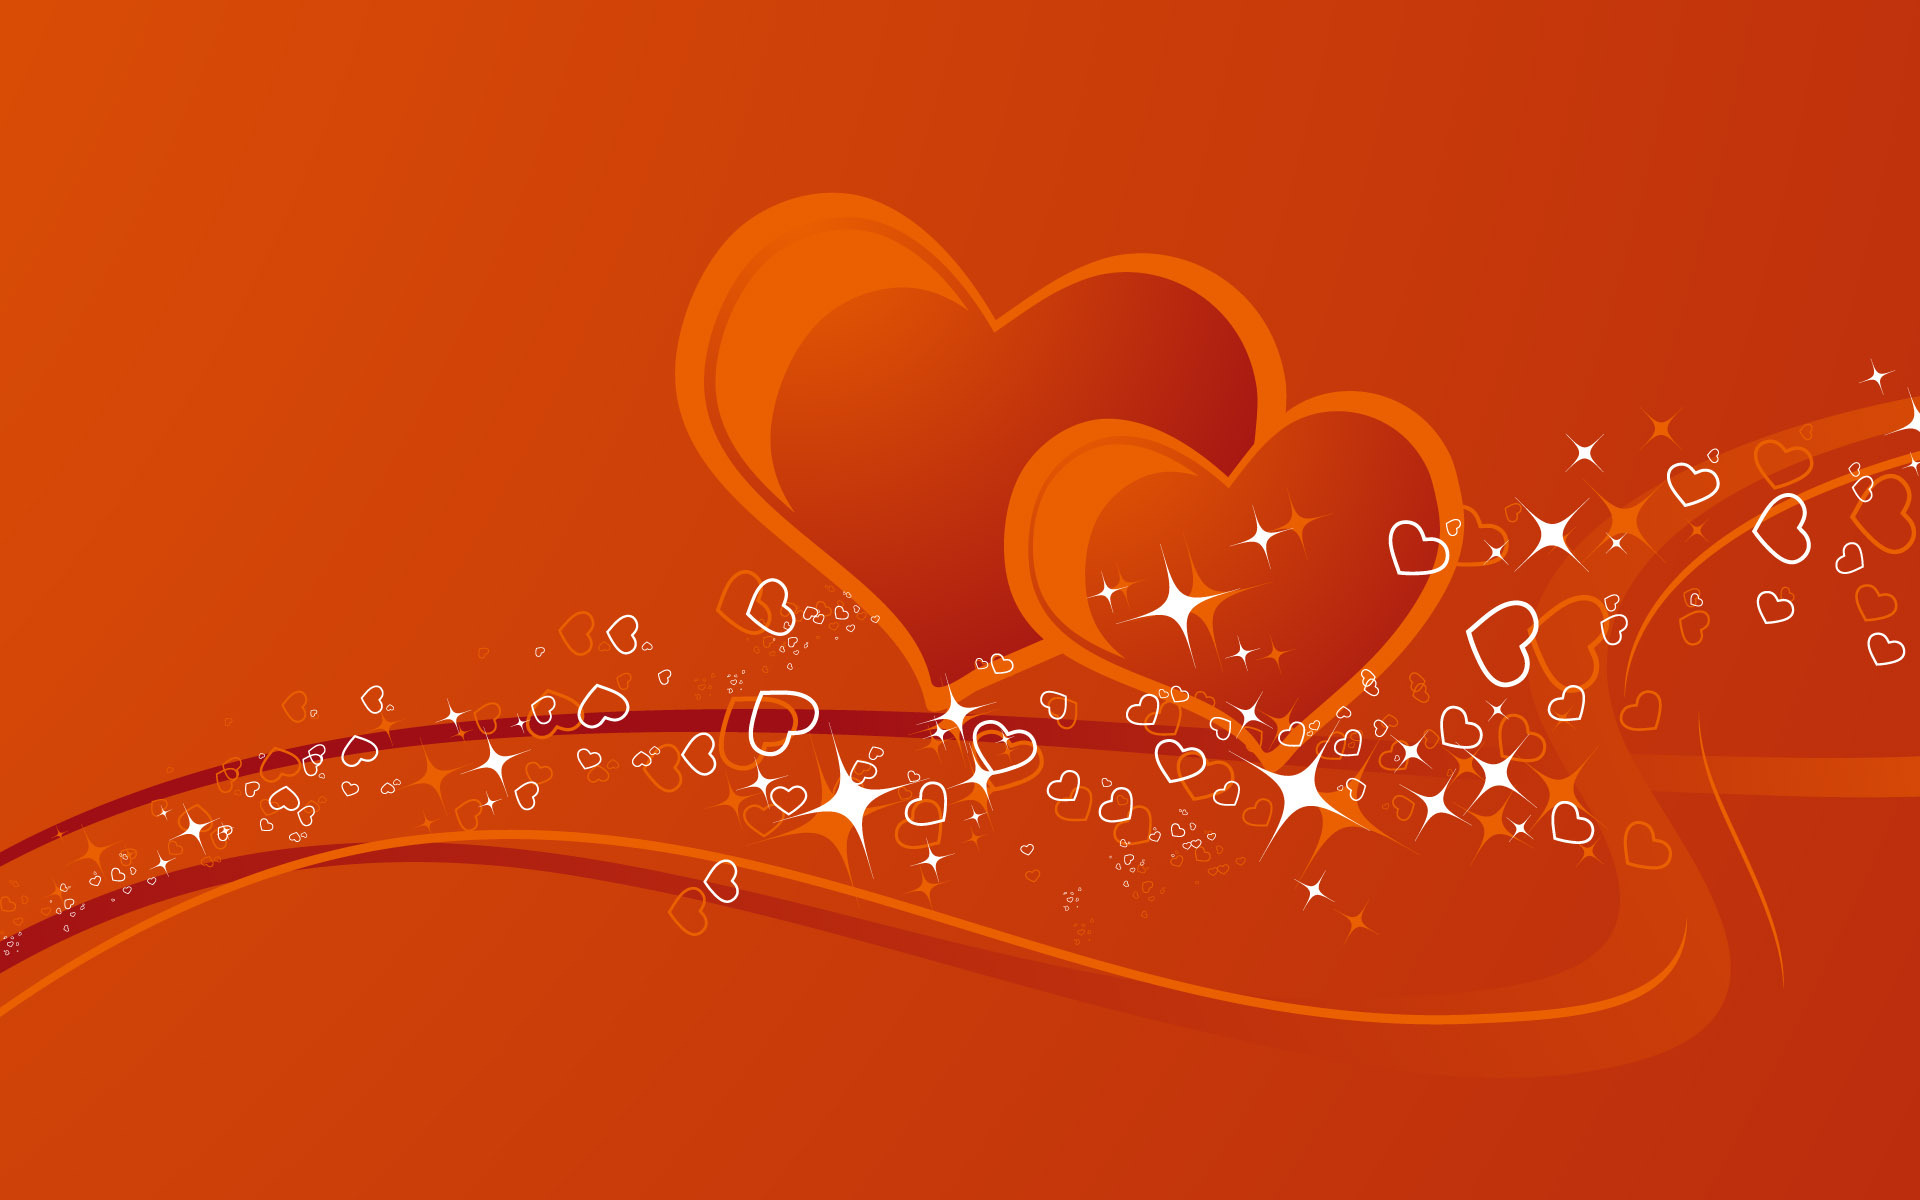 Love Wallpapers New Latest : Love wallpaper - Love Wallpaper (4187621) - Fanpop